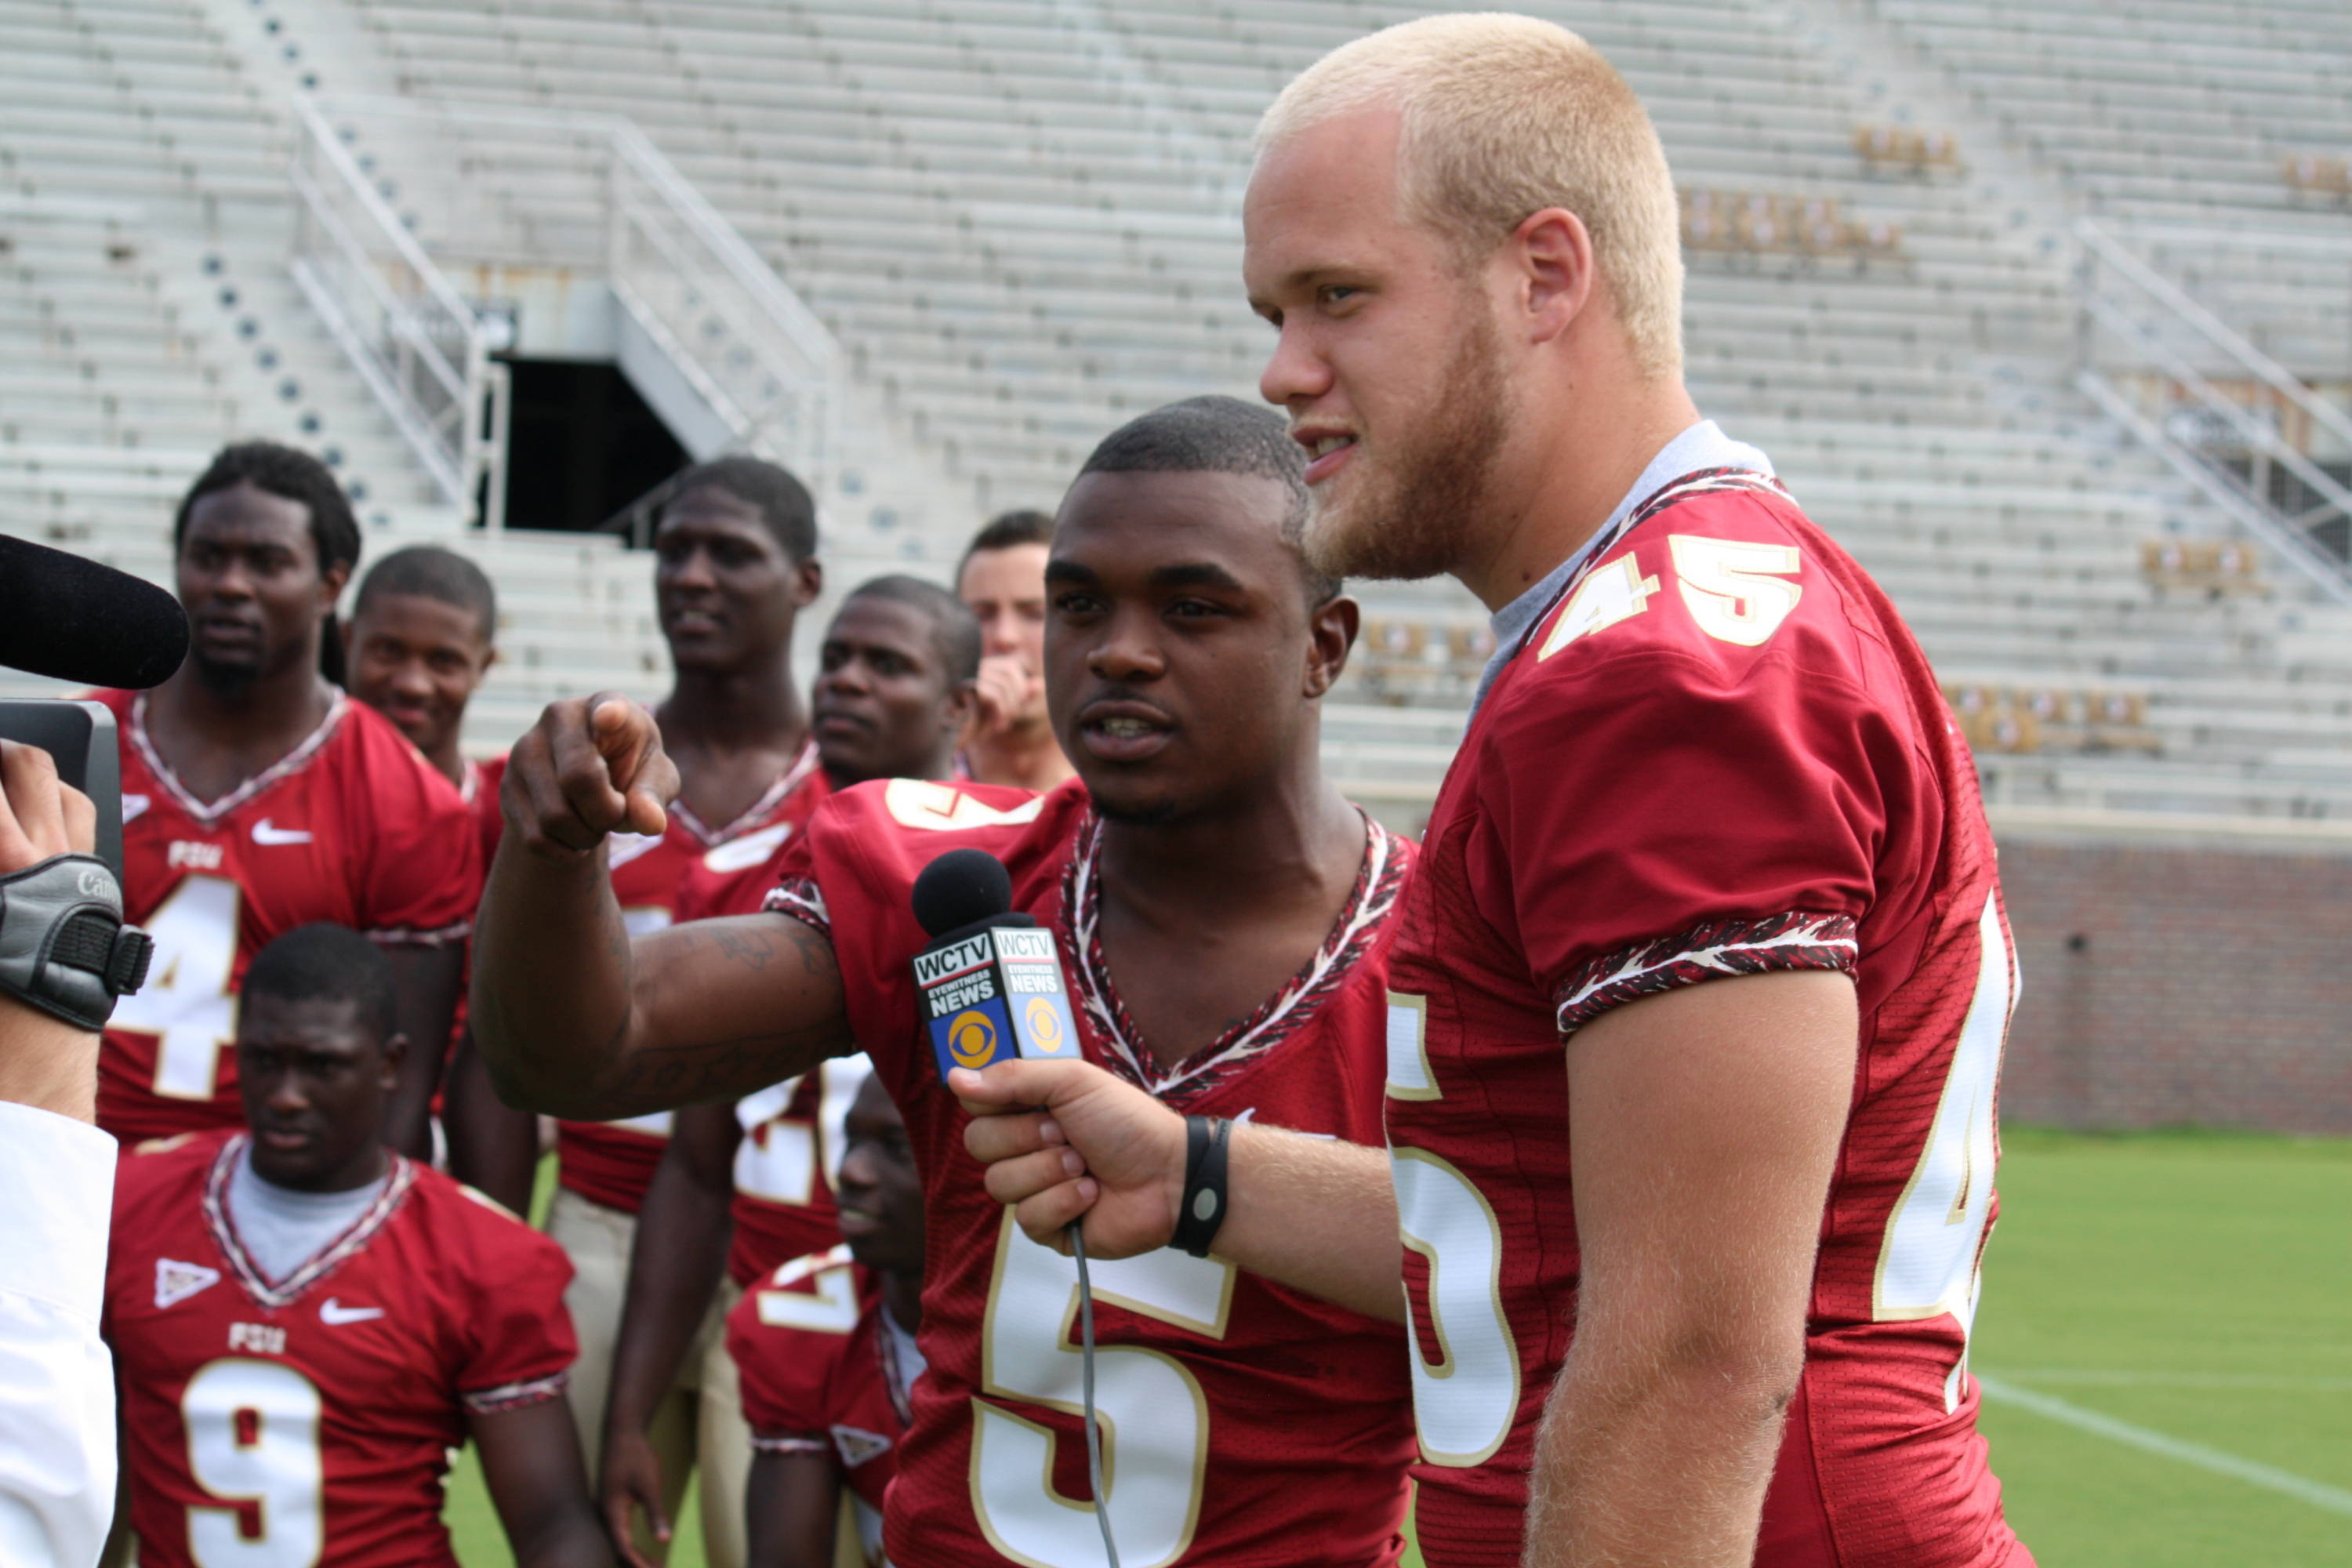 Greg Reid and Shawn Powell hamming it up in front of the camera.